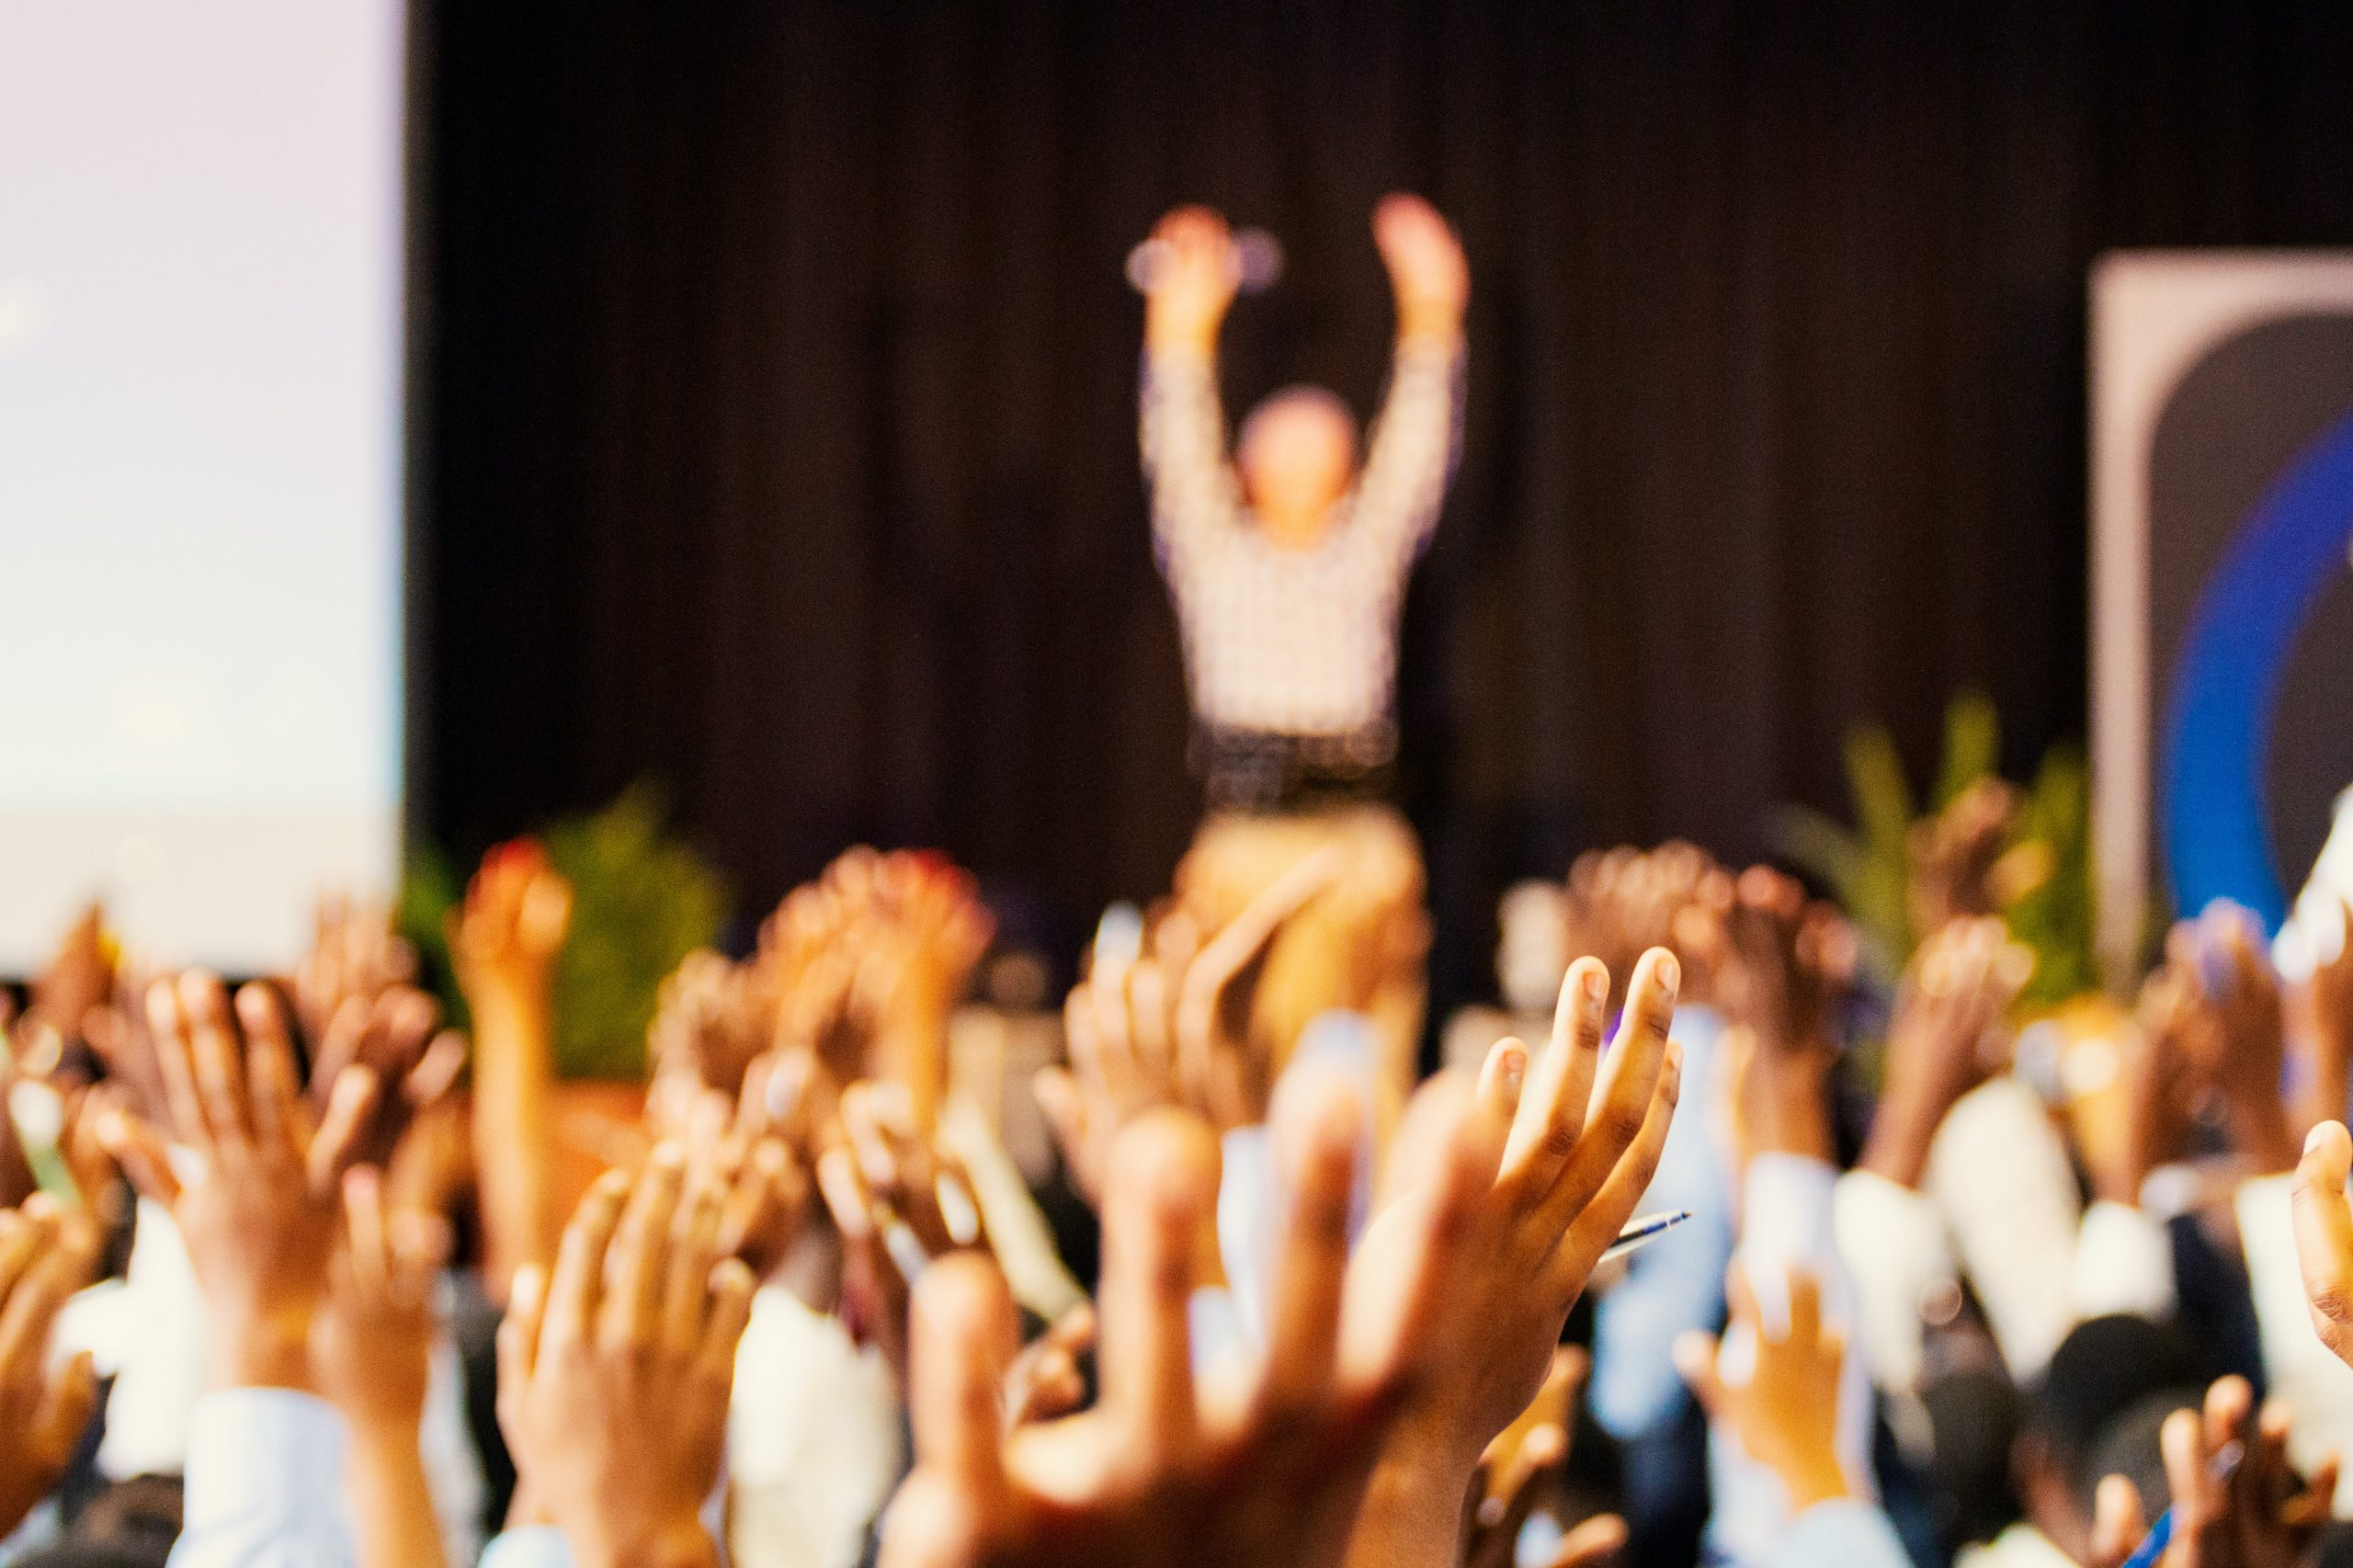 Professional speaker showing in-person speaking and engaging audience